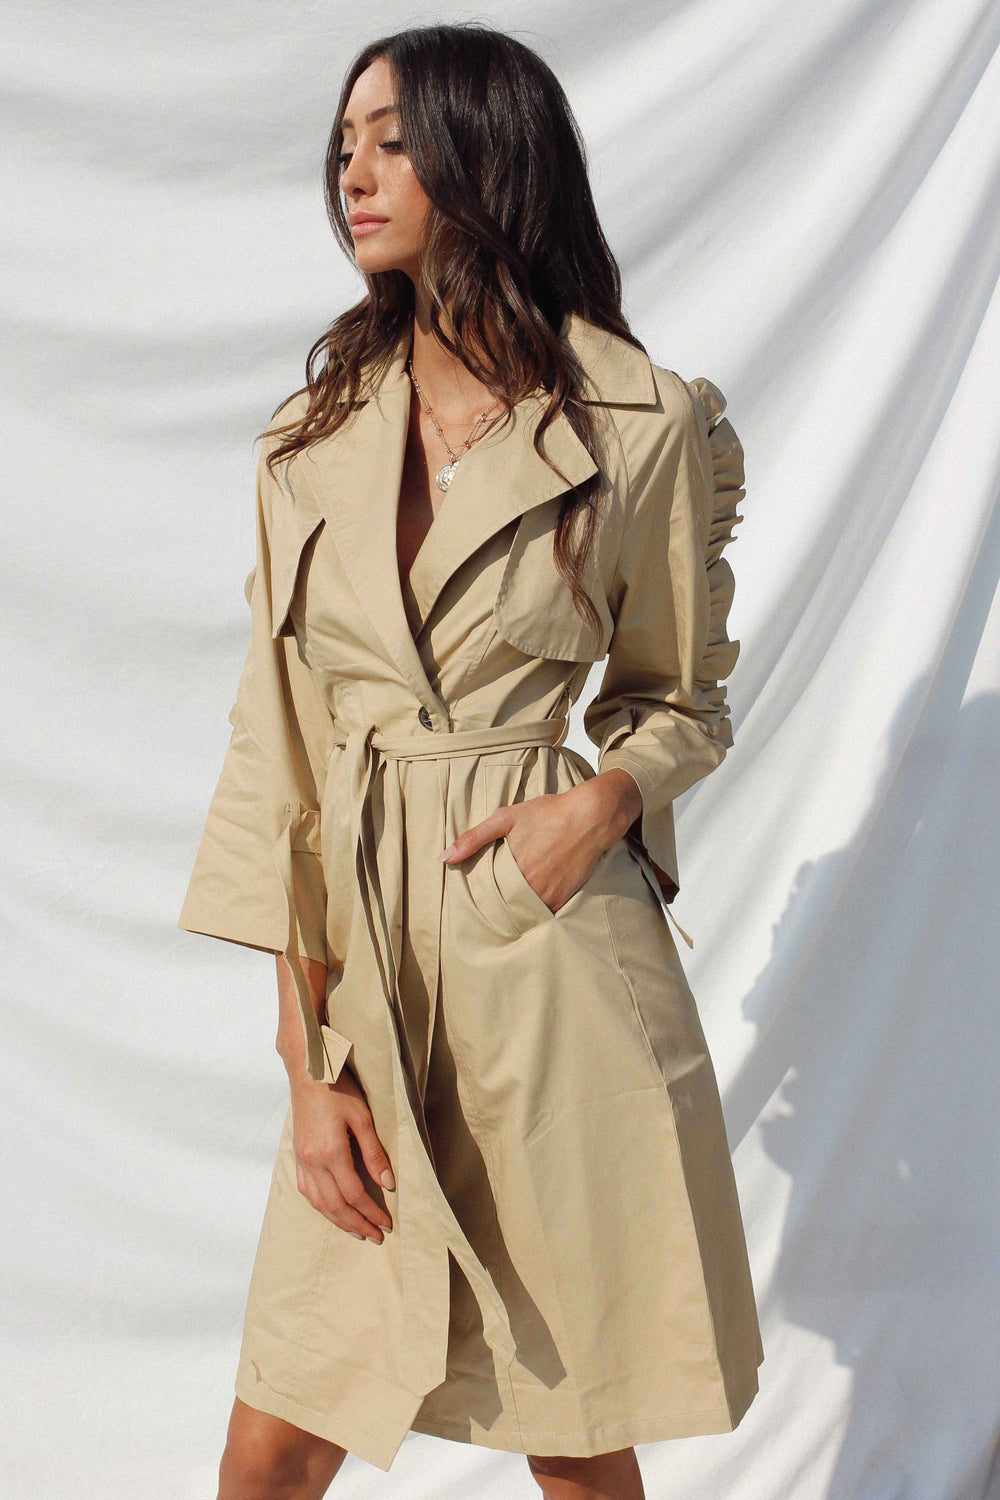 VARVARA TRENCH COAT - Chic Le Frique